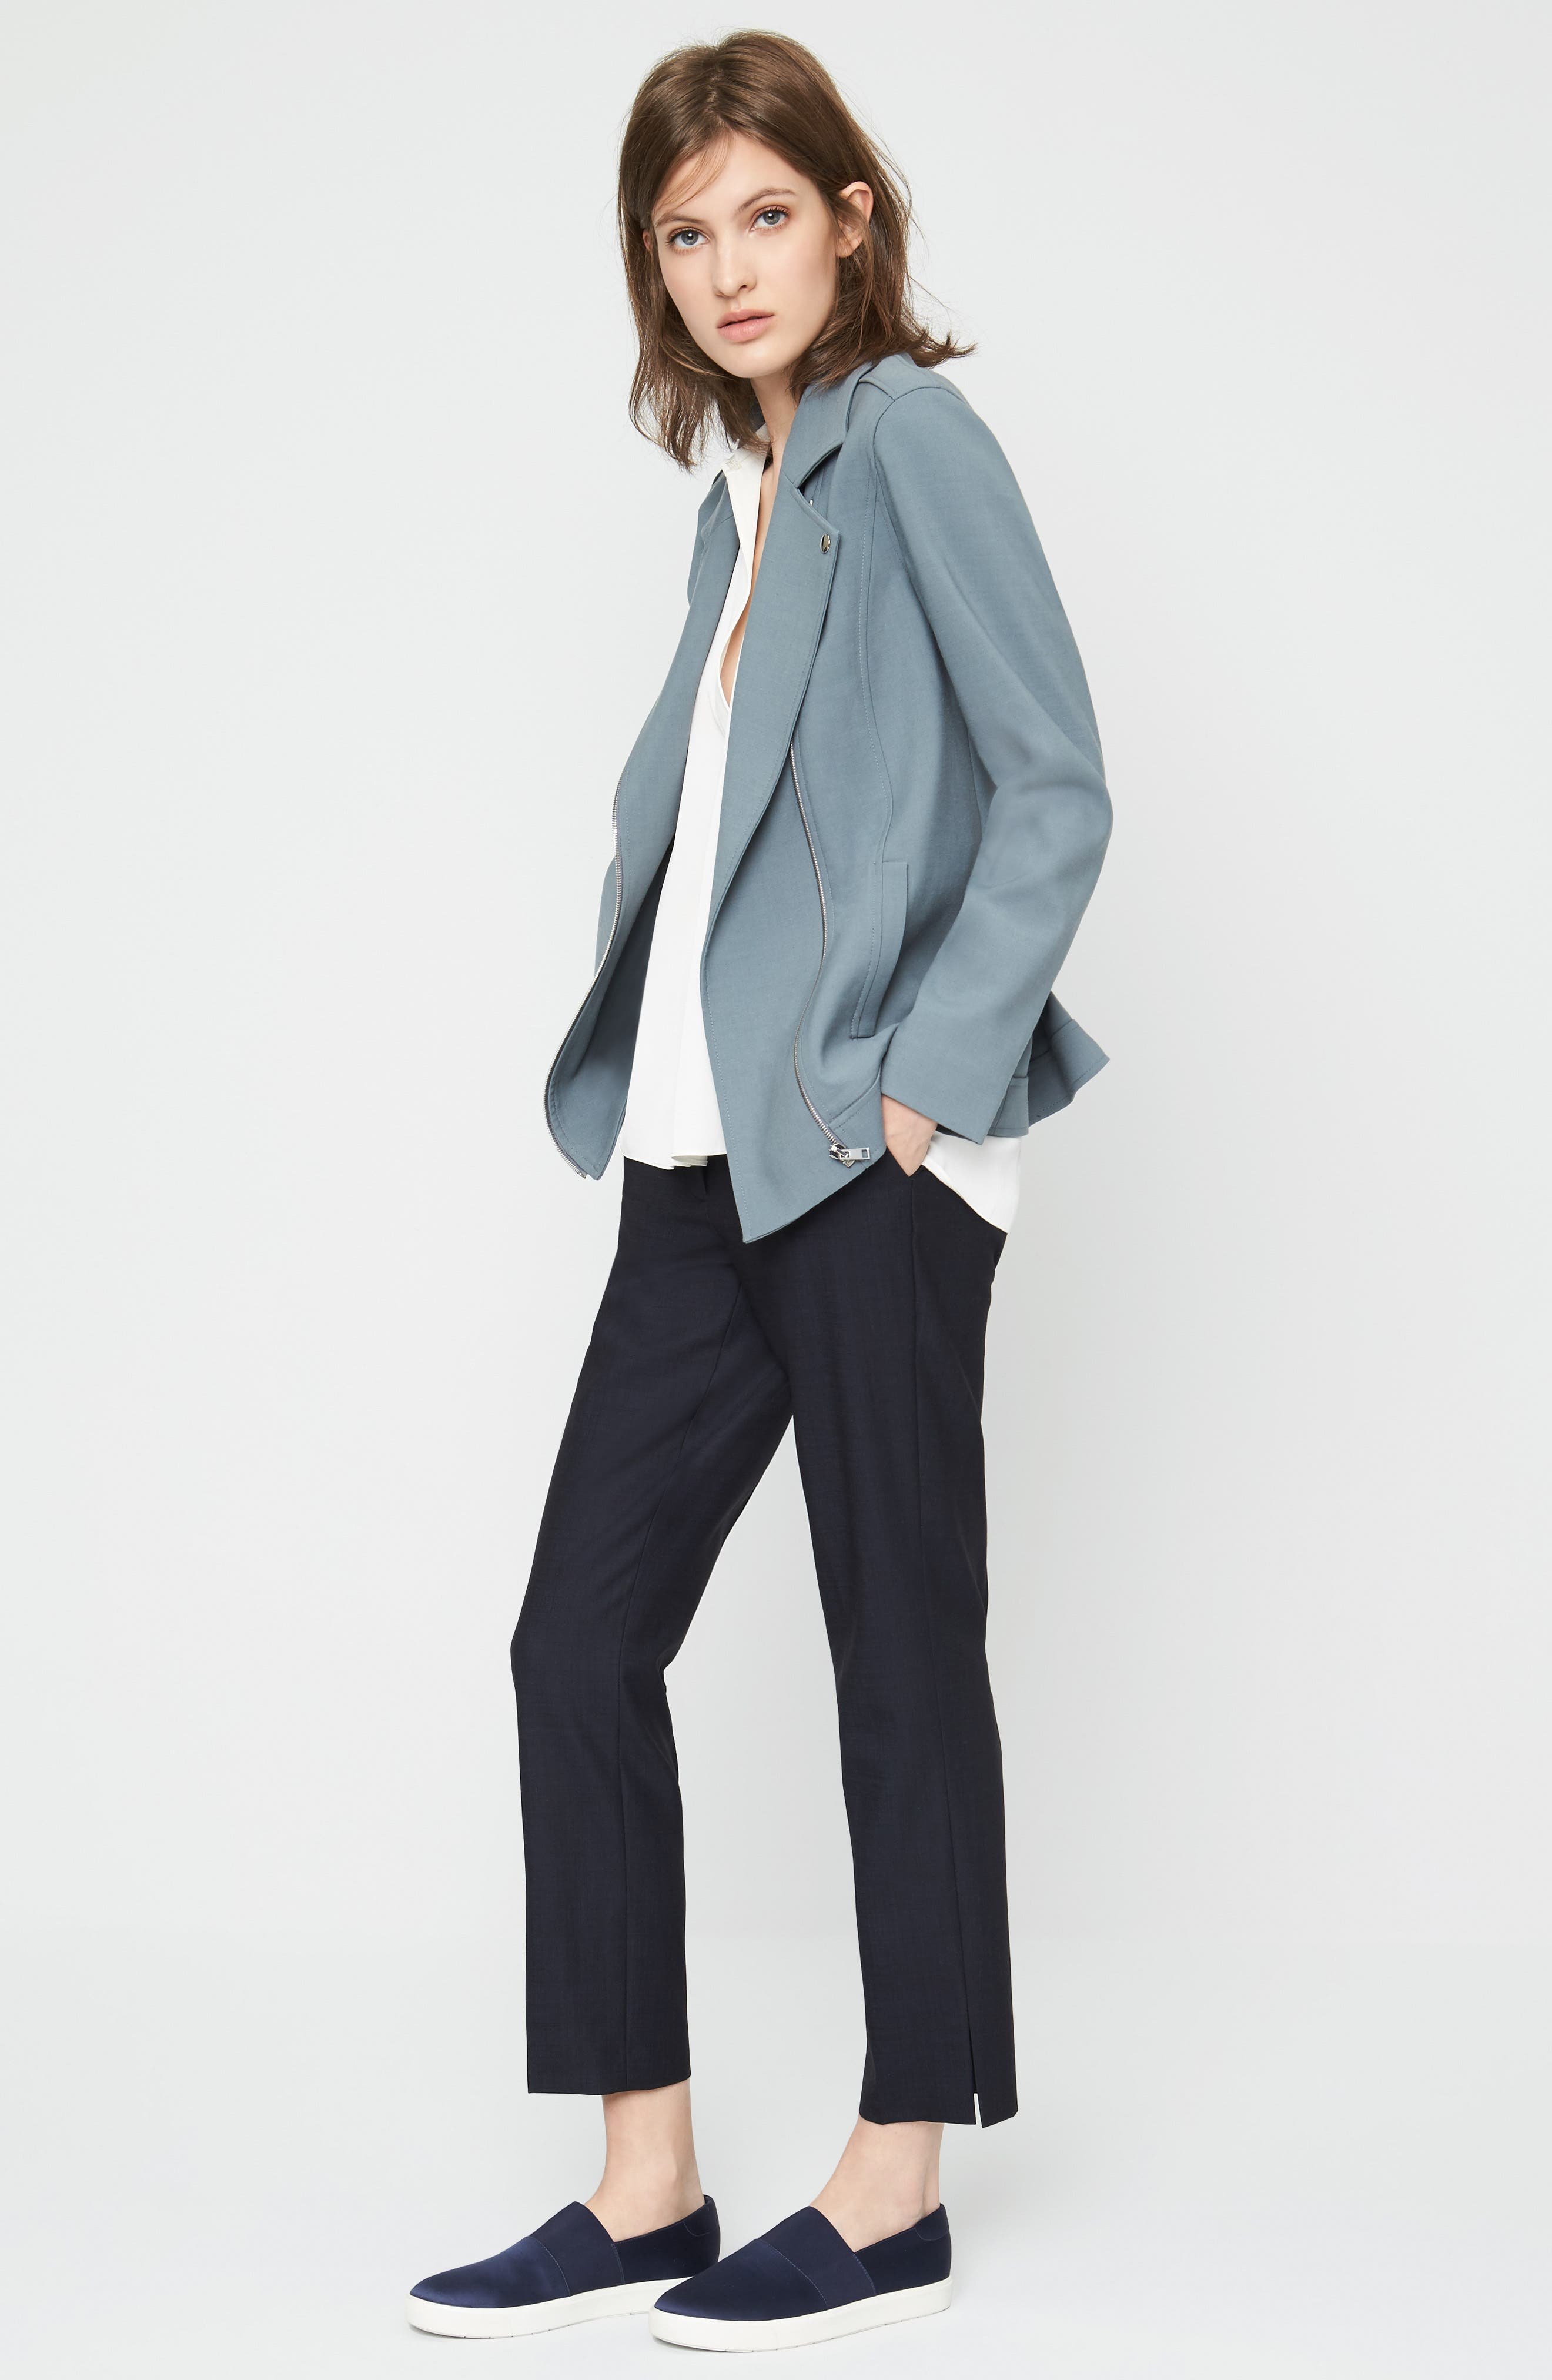 Classiques Entier® Jacket, Shell & Pants Outfit with Accessories